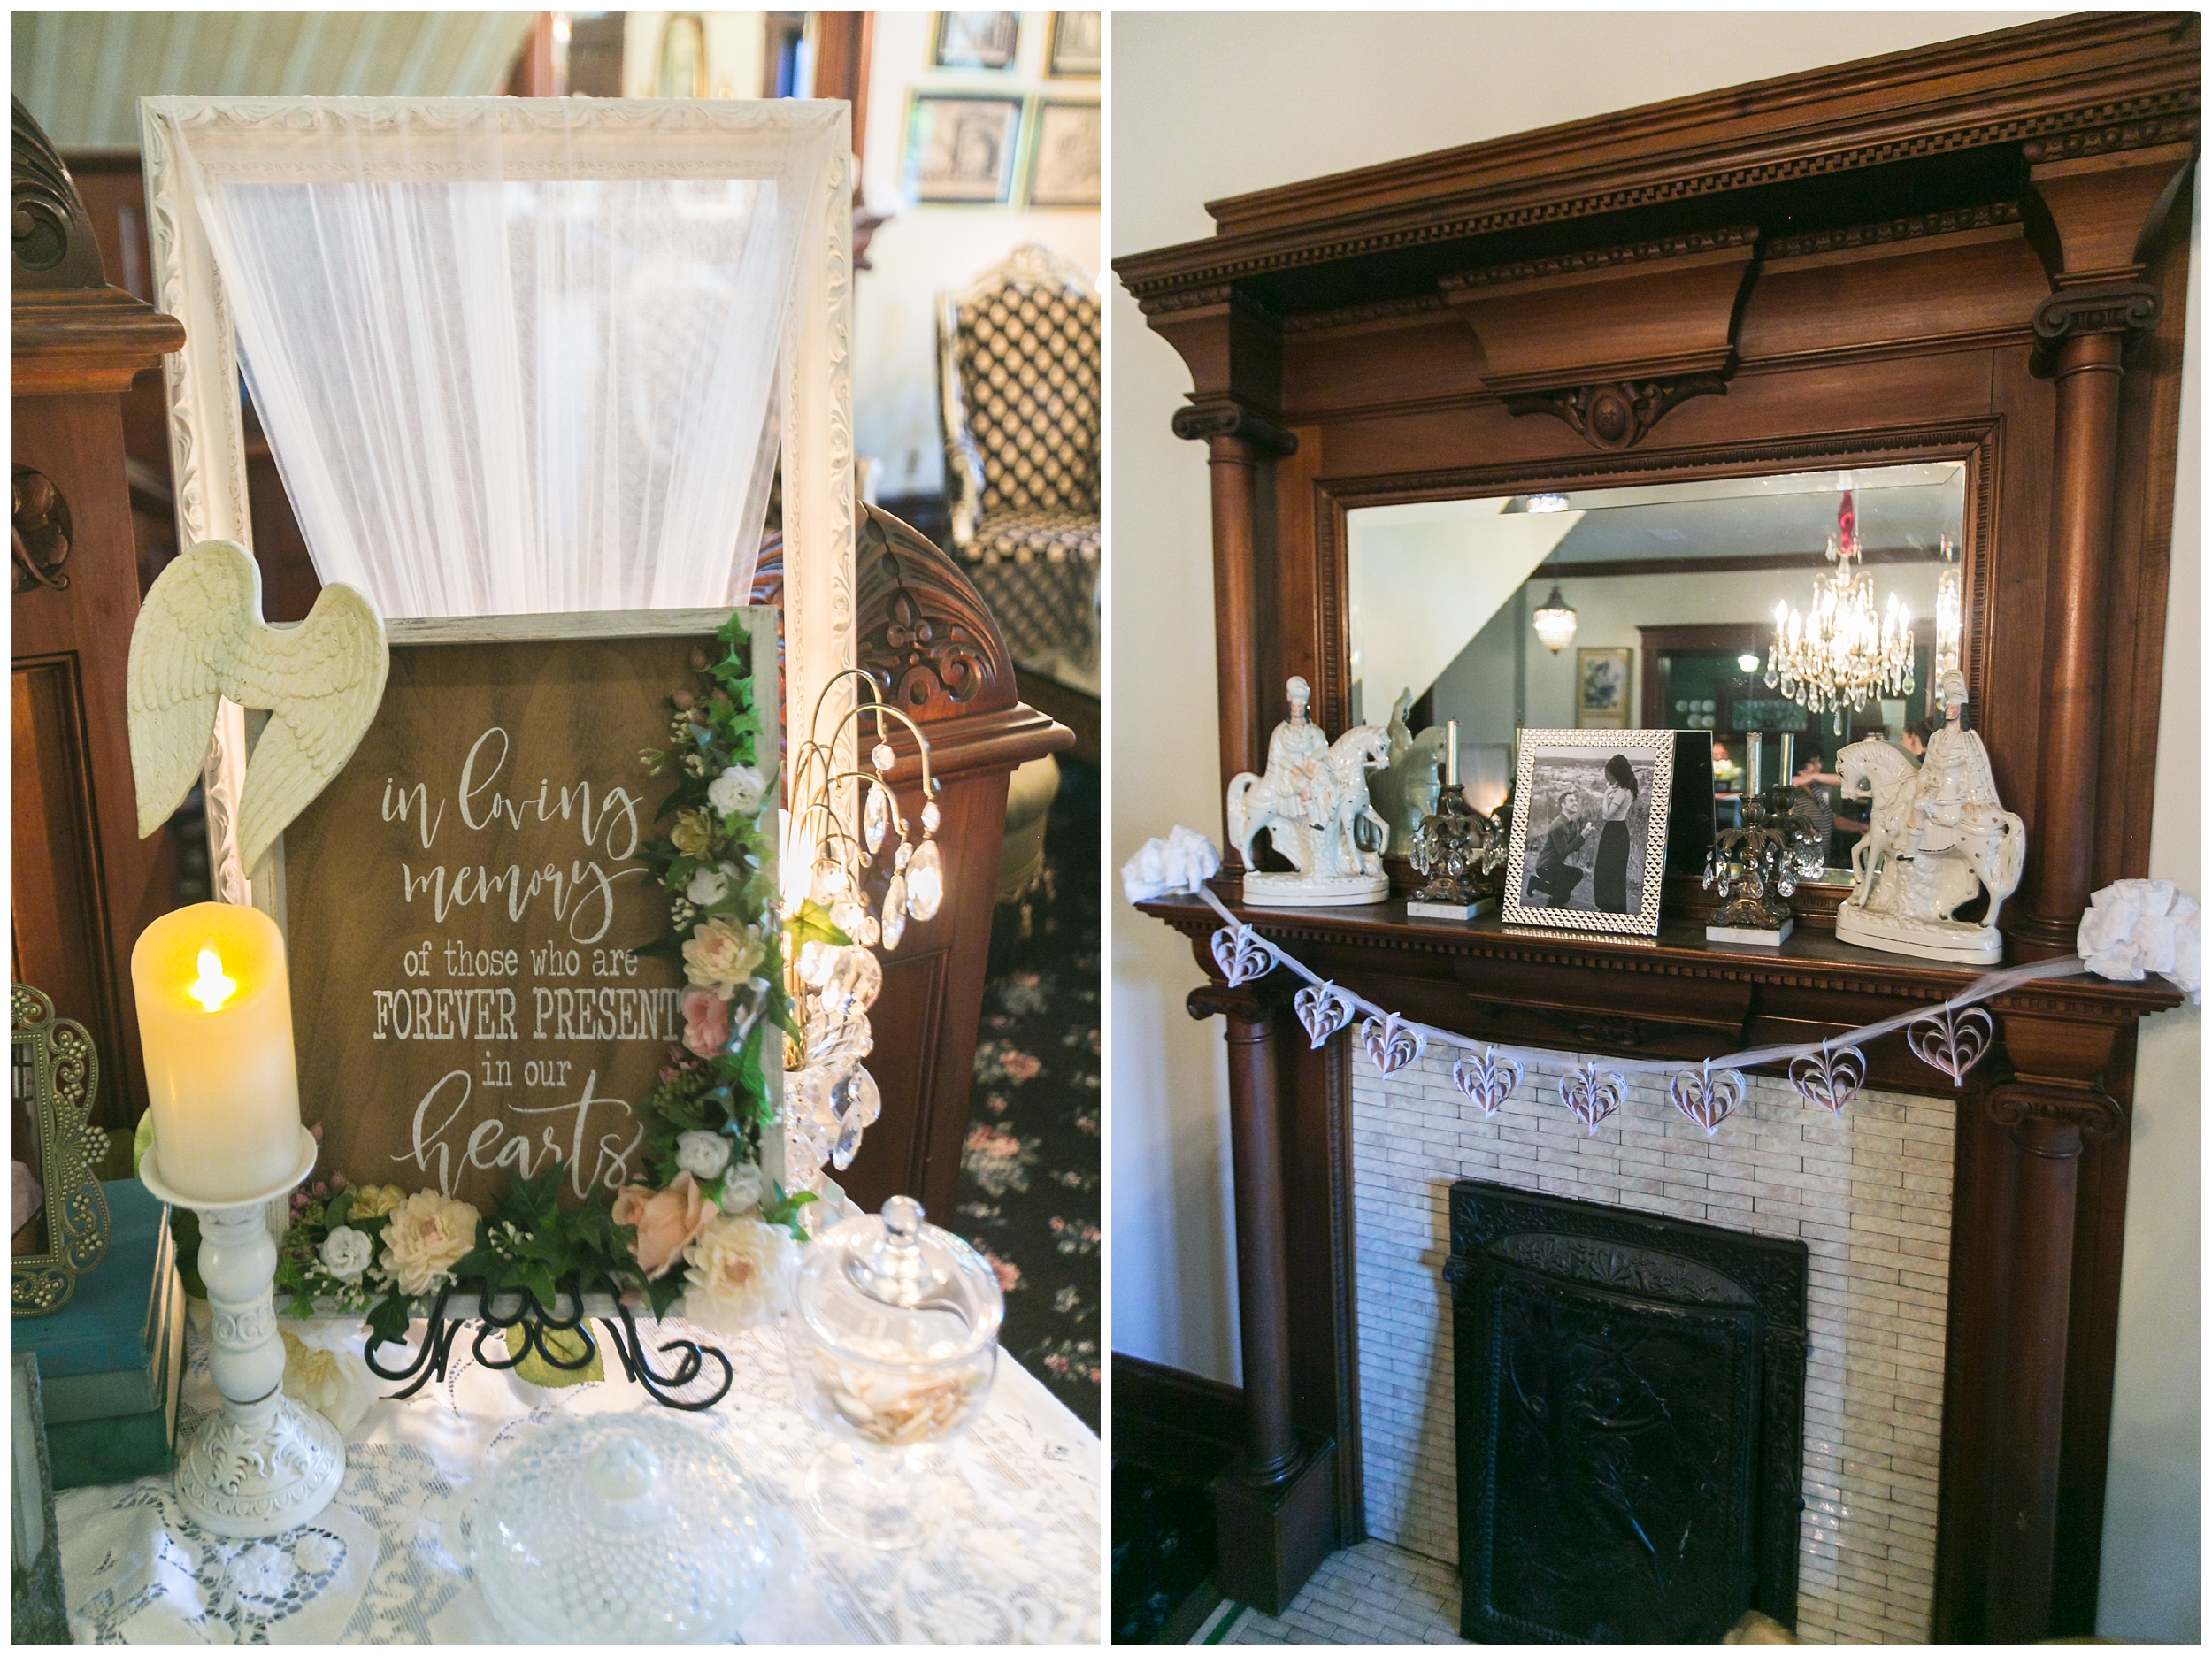 I love how every fireplace had their own unique decor!